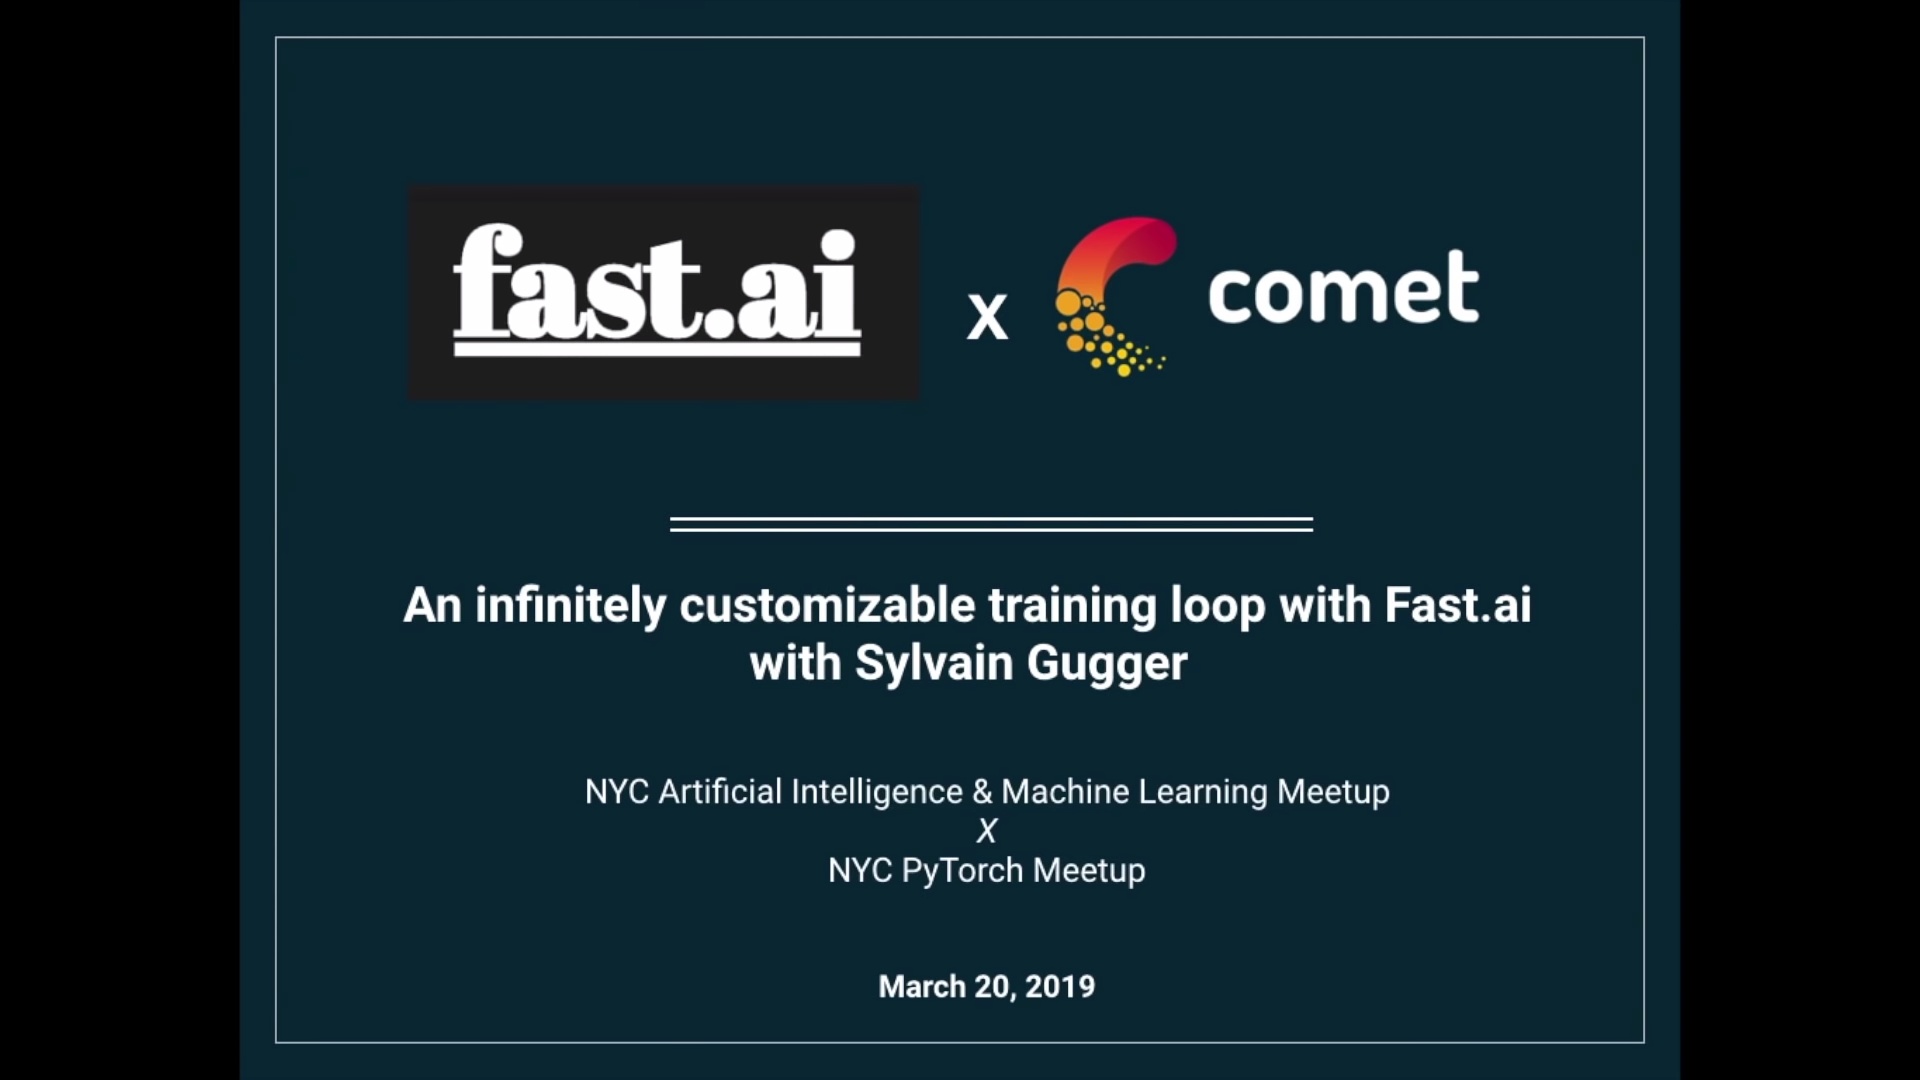 Sylvain Gugger at a joint NYC AI & ML x NYC PyTorch on 03/20/2019